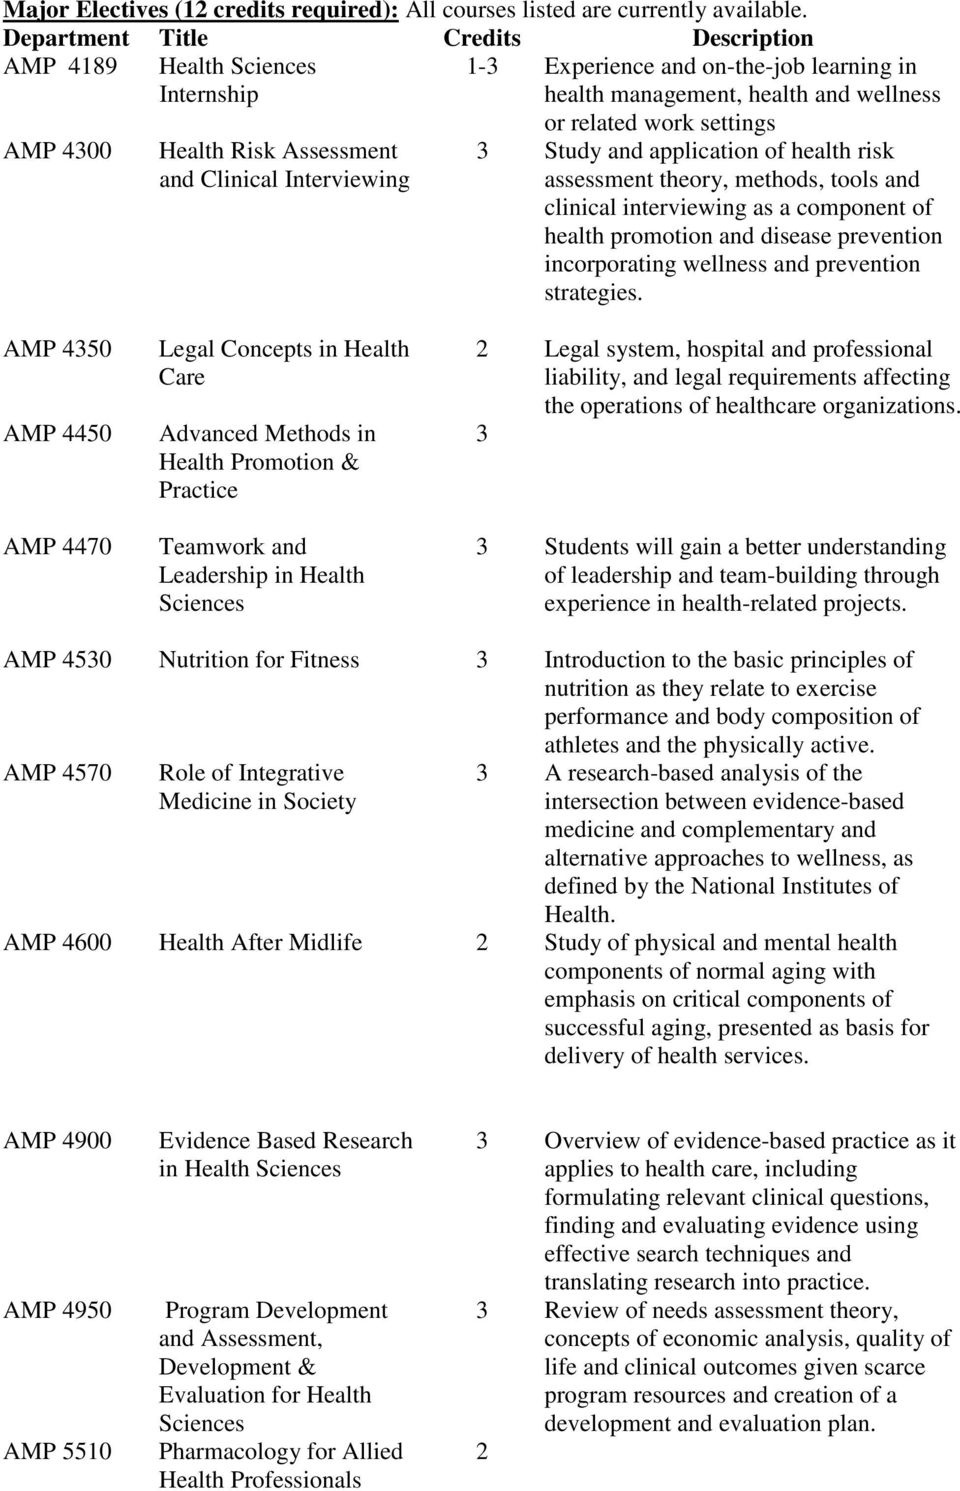 Interviewing or related work settings 3 Study and application of health risk assessment theory, methods, tools and clinical interviewing as a component of health promotion and disease prevention